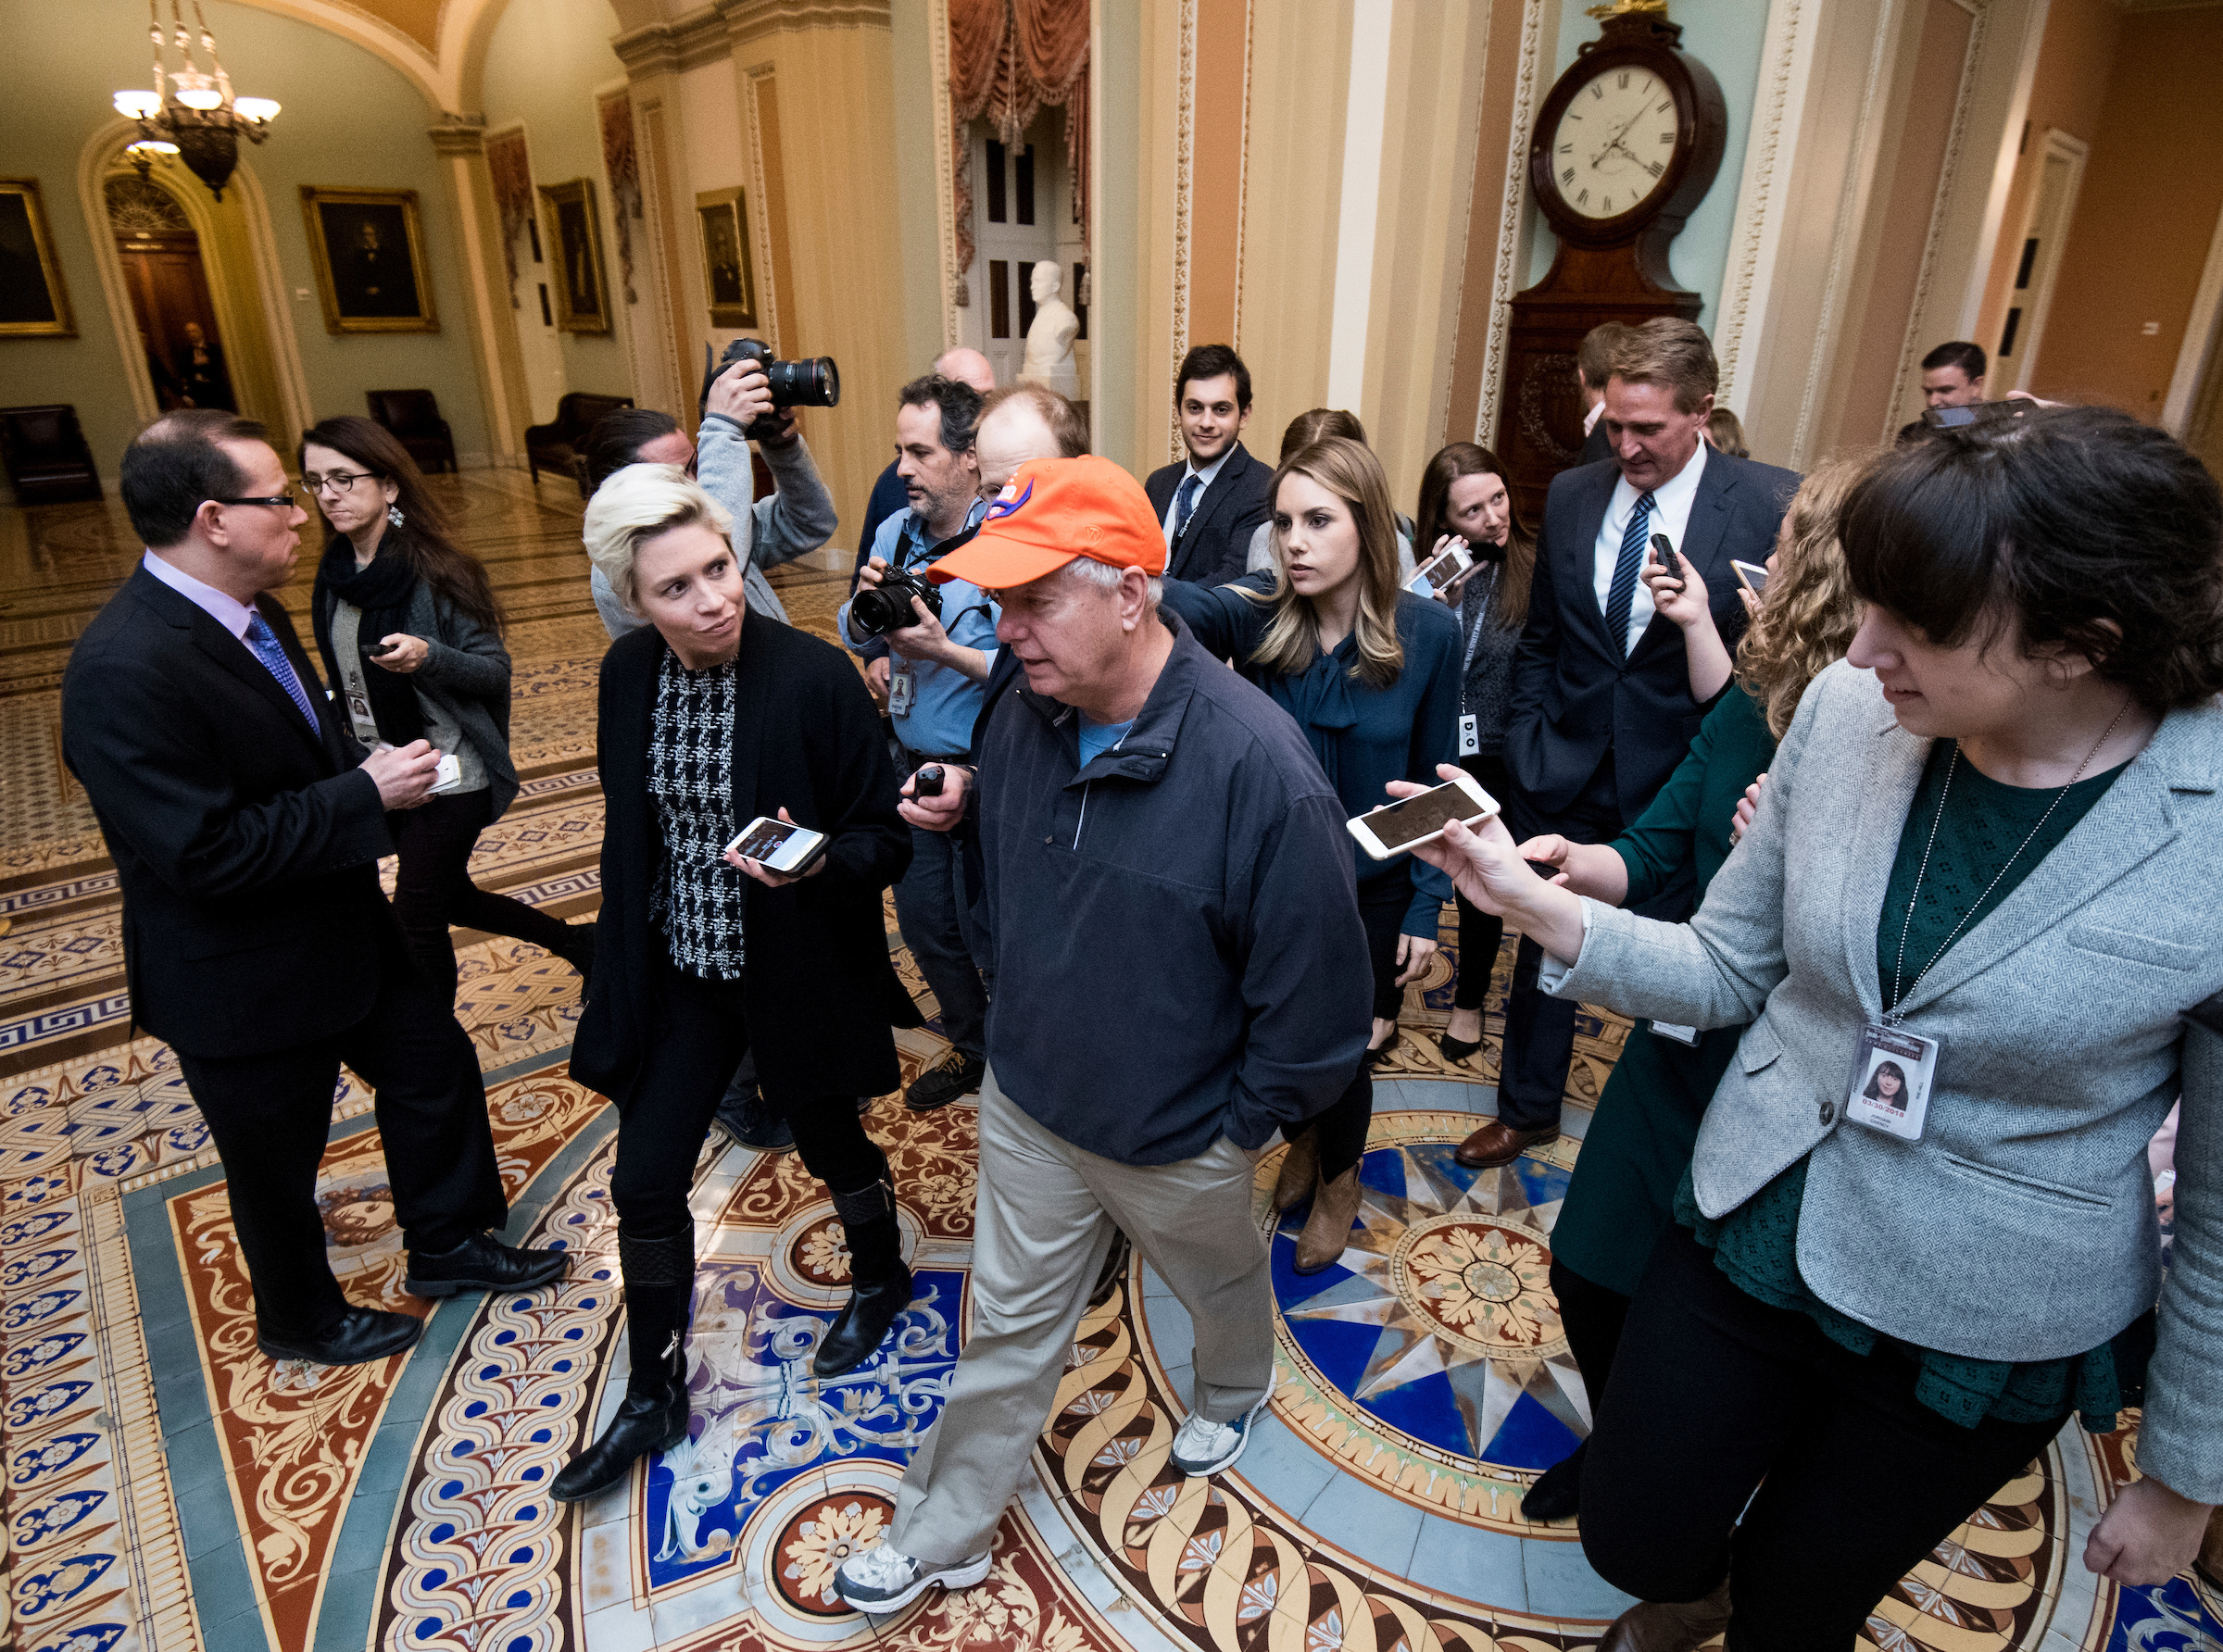 From left, Sen. Lindsey Graham, R-S.C., and Sen. Jeff Flake, R-Ariz., leave after meeting in Senate Leader McConnell's office as Senate moderates try to find a way to end the government shutdown on Sunday. (Bill Clark/CQ Roll Call)